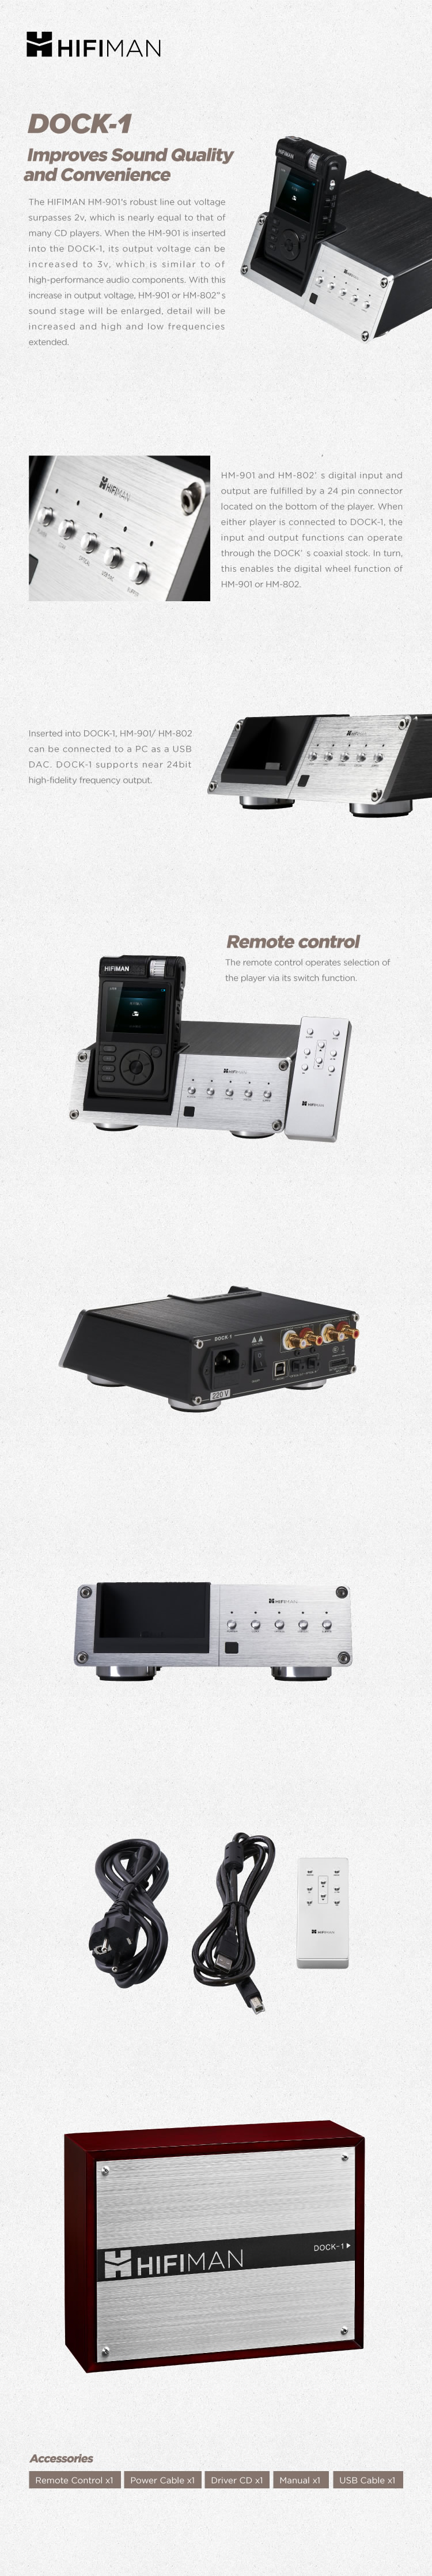 Docking stations for HIFIMAN HM-901/802